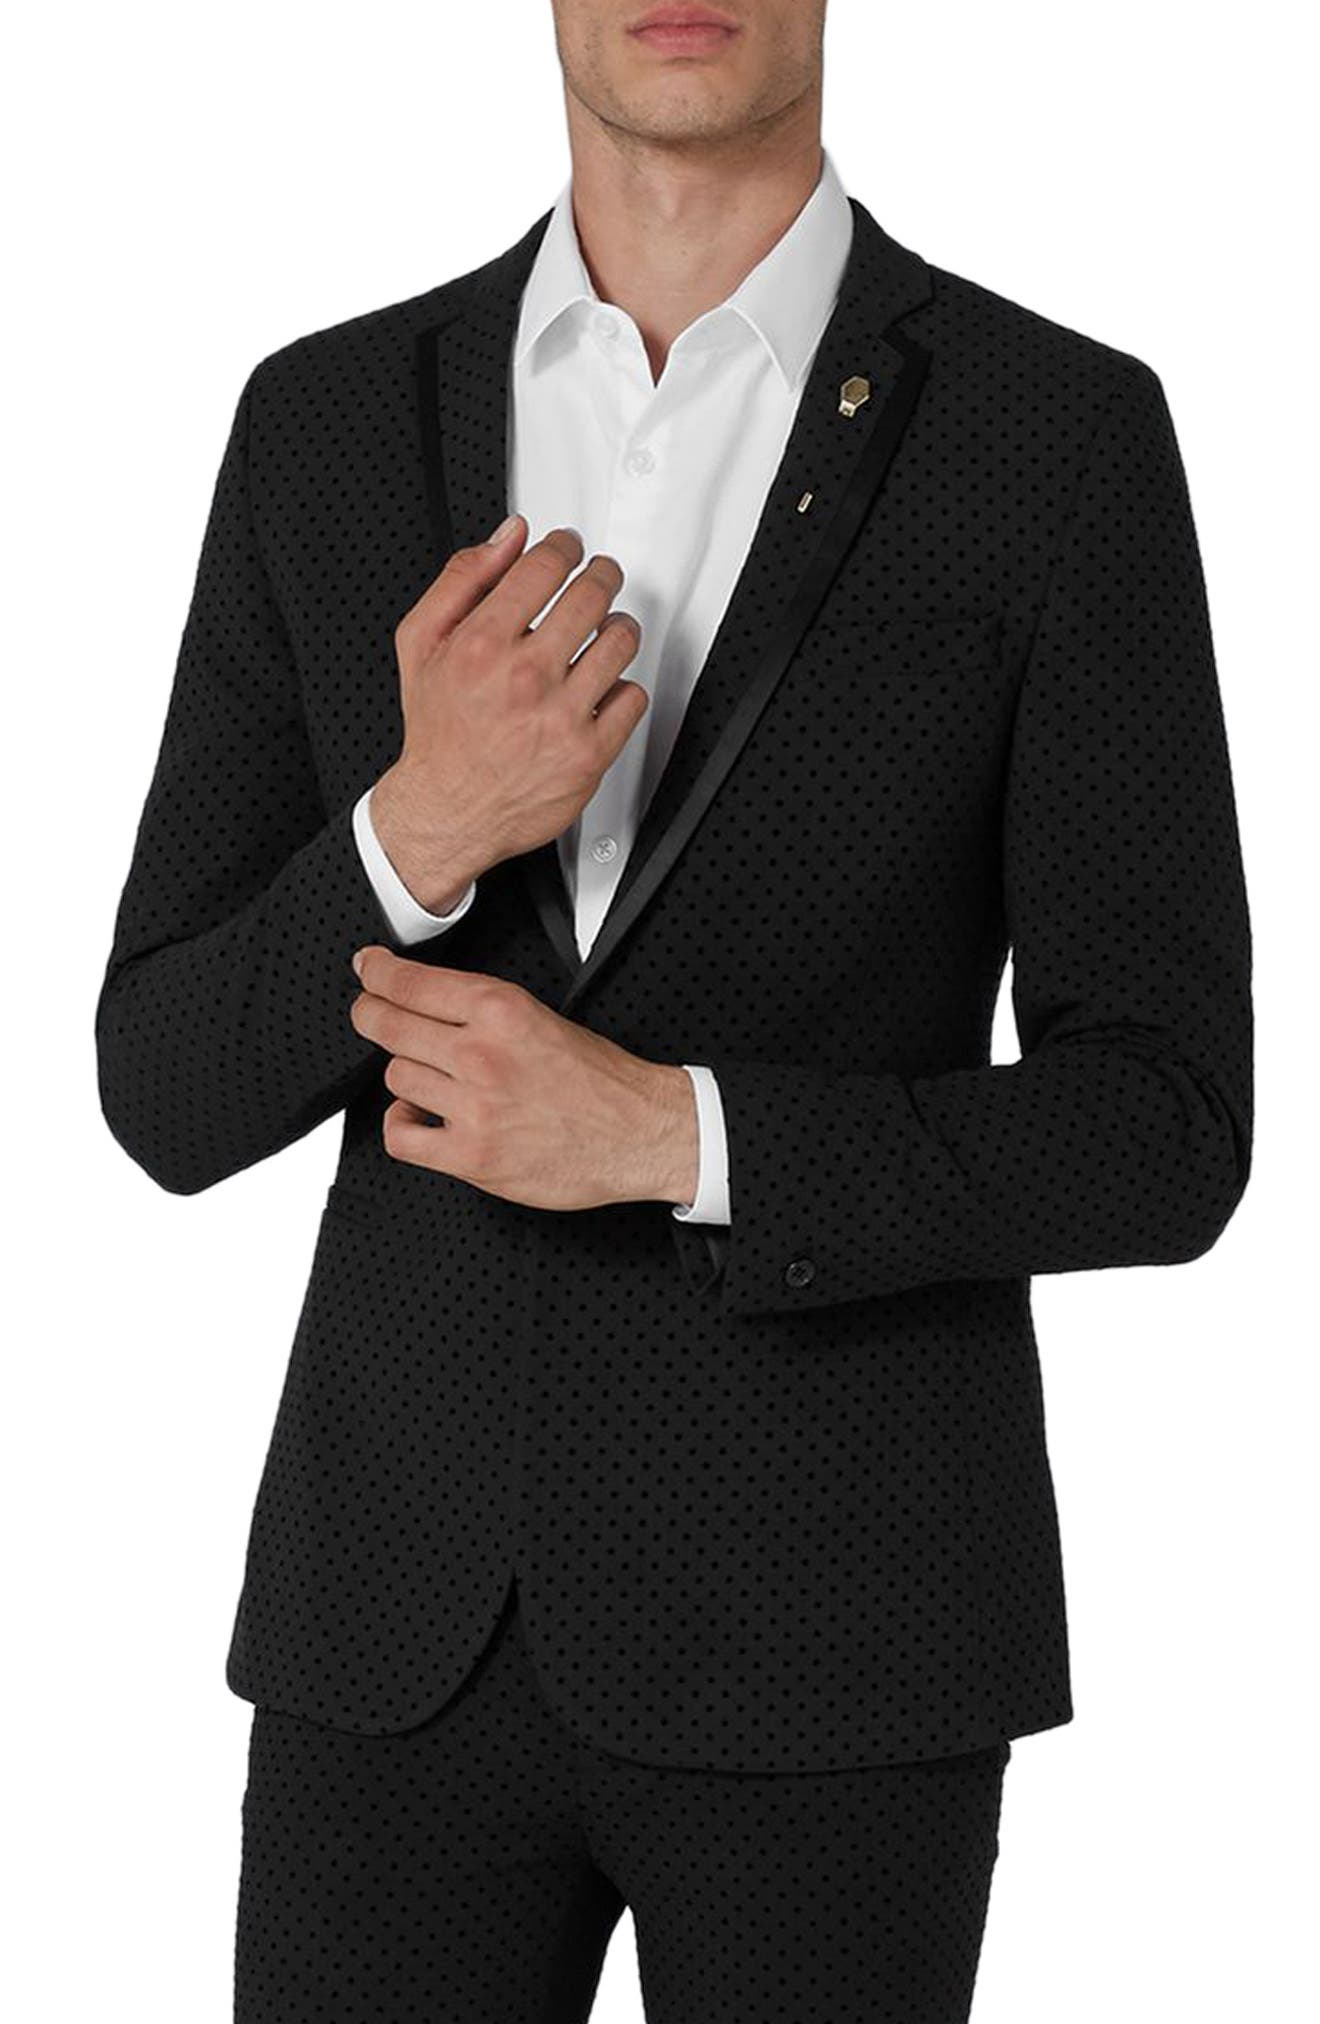 Dotted Ultra Skinny Fit Suit Jacket,                         Main,                         color, Black